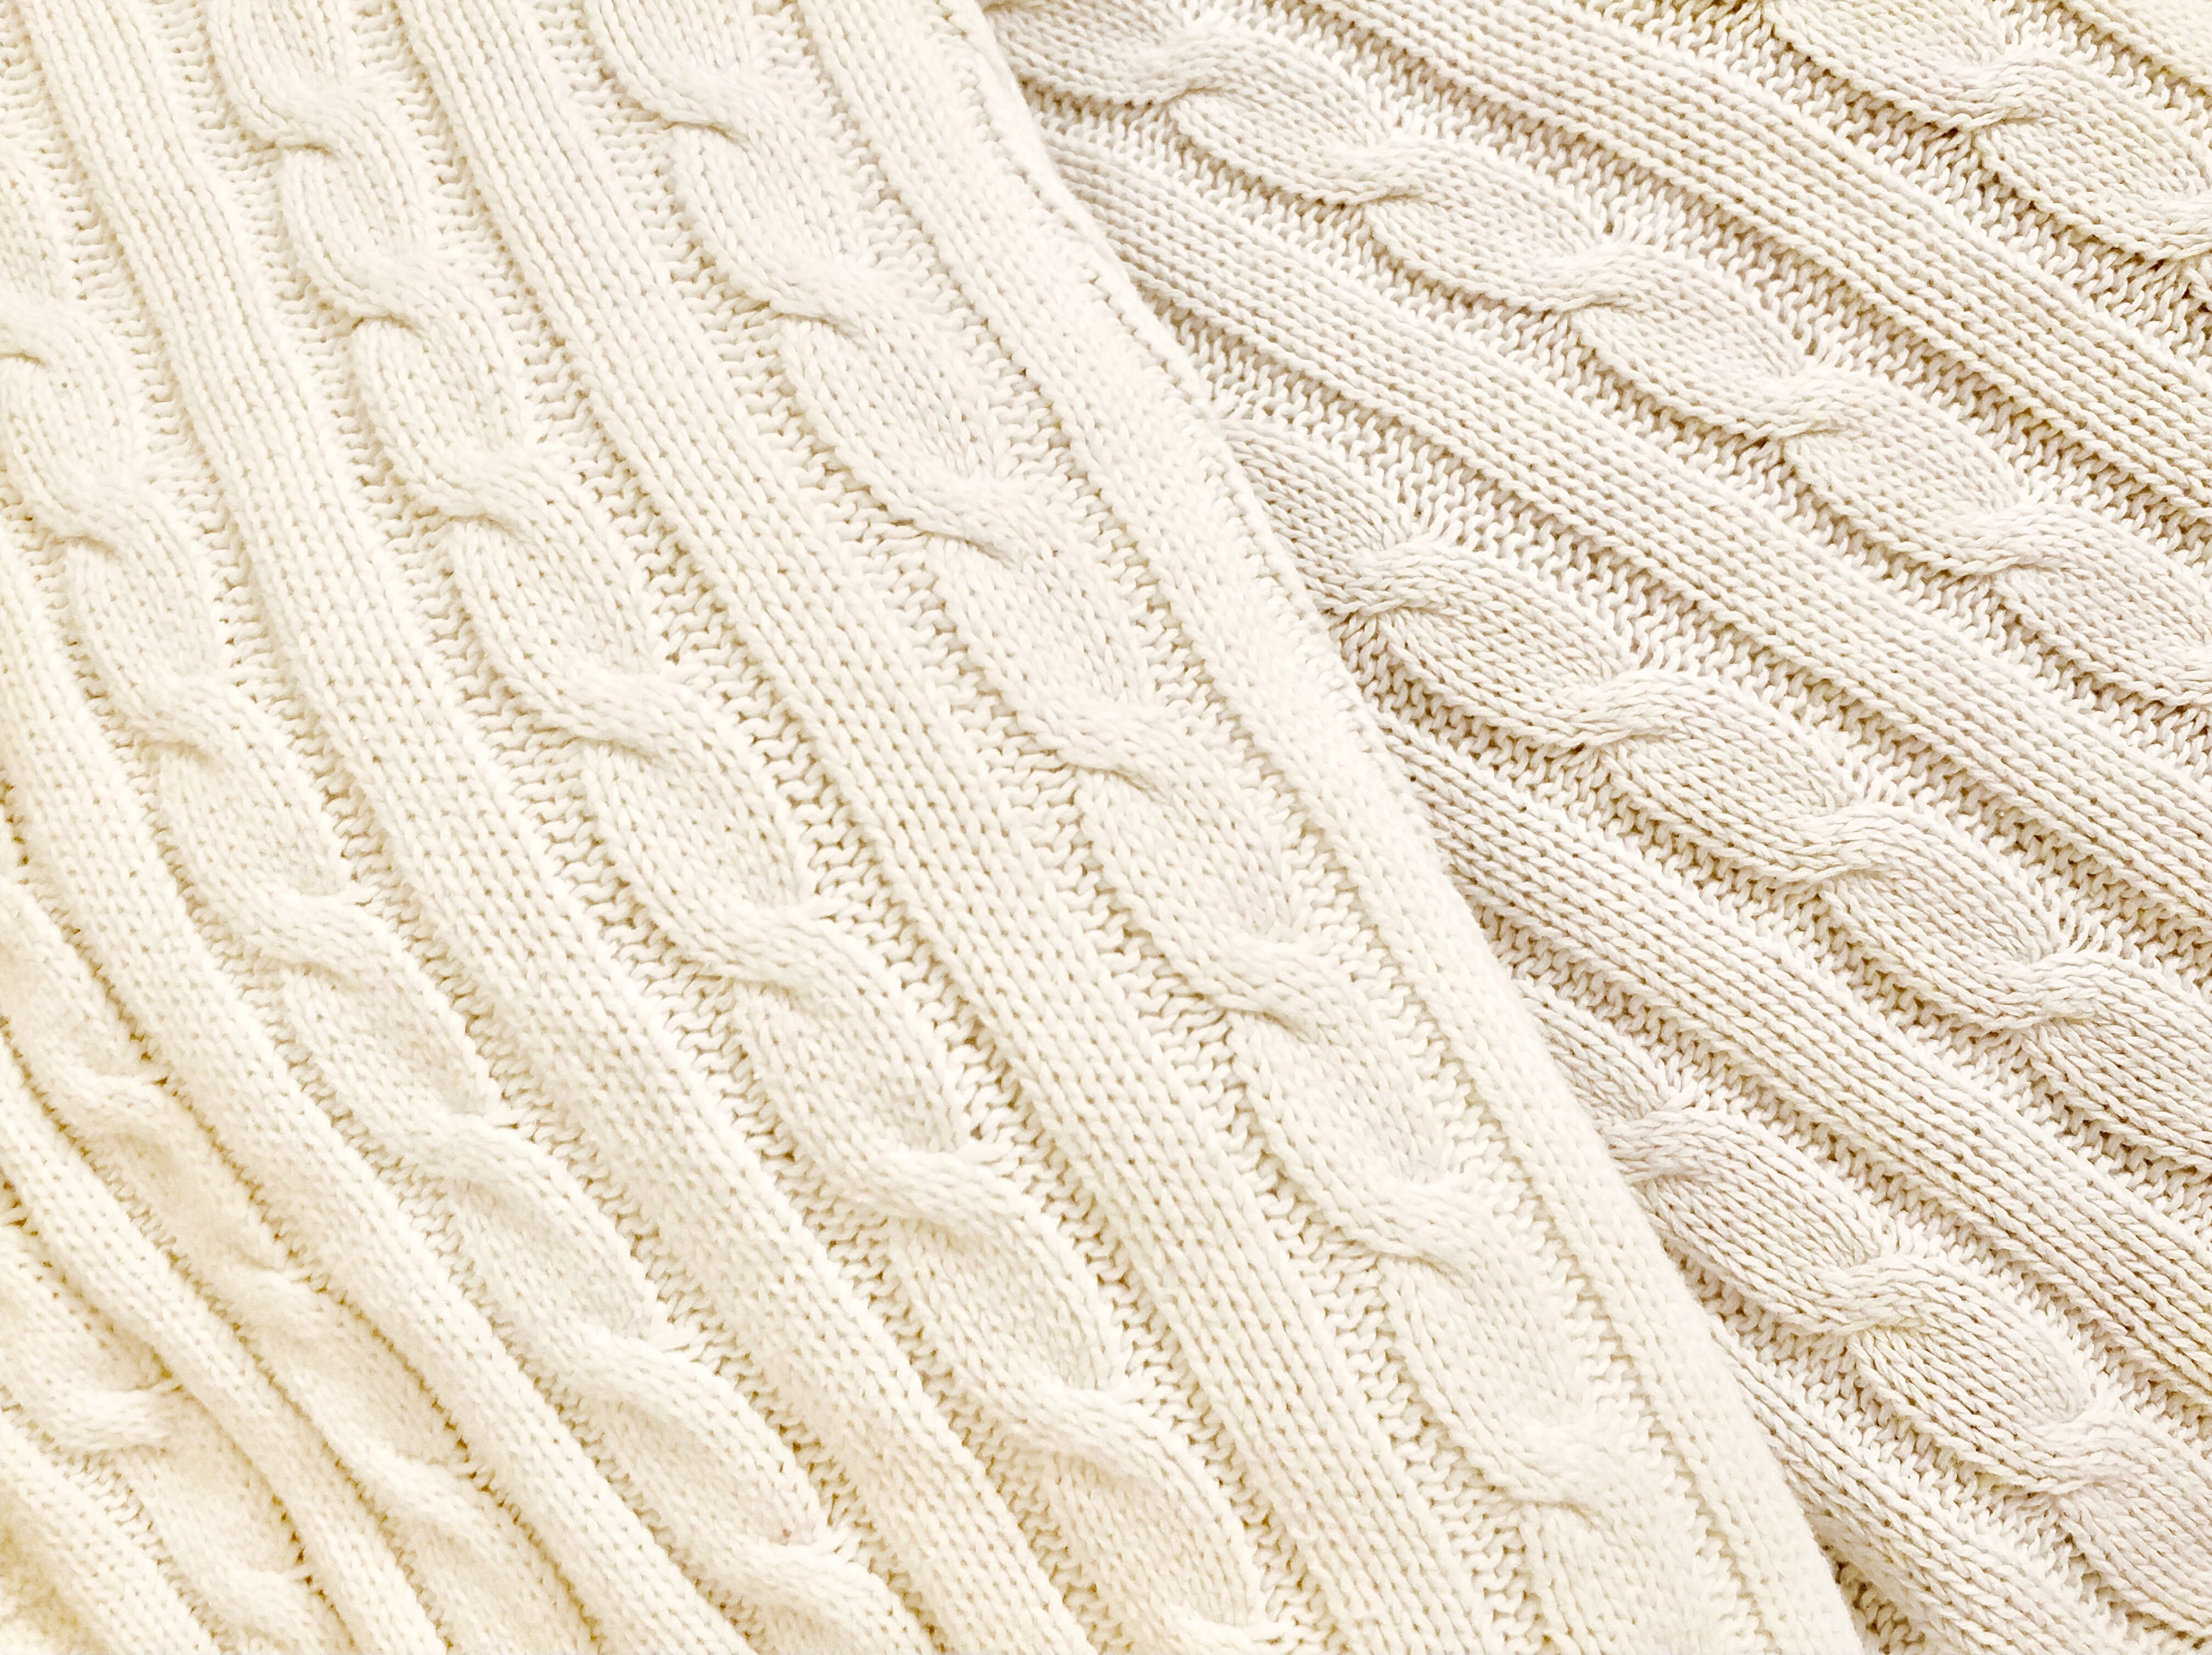 a896150a06c01 Pure natural cotton. Cable knit baby blankets. Breathable ...